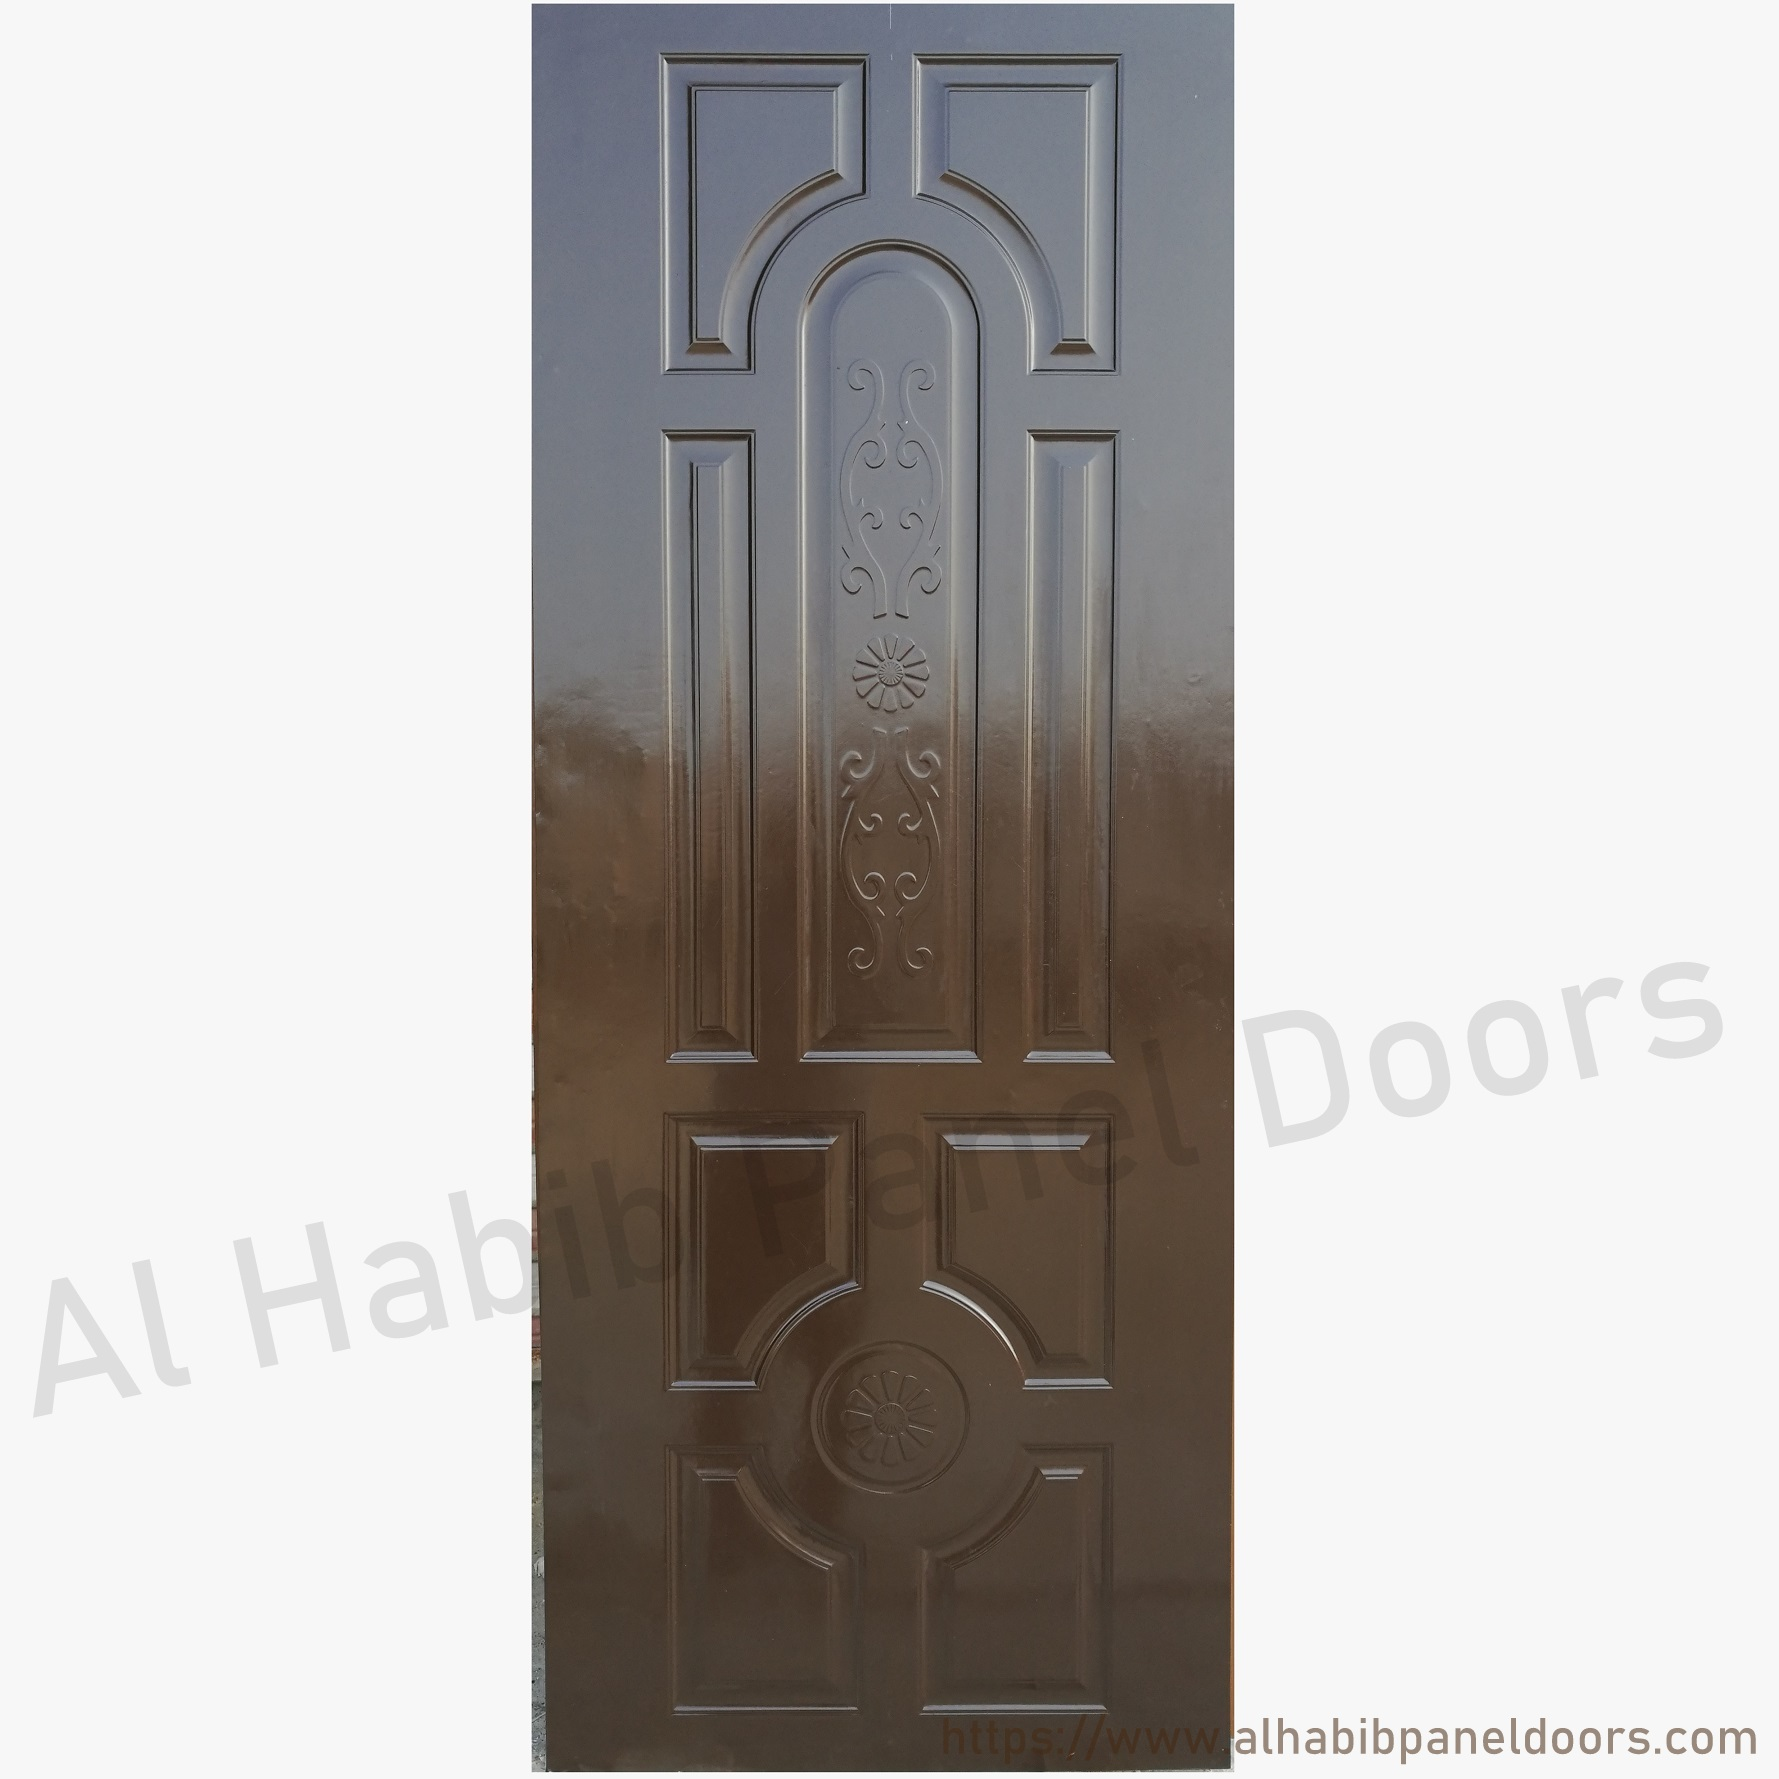 Fiber Panel Door Flower Design Hpd471 Fiber Panel Doors